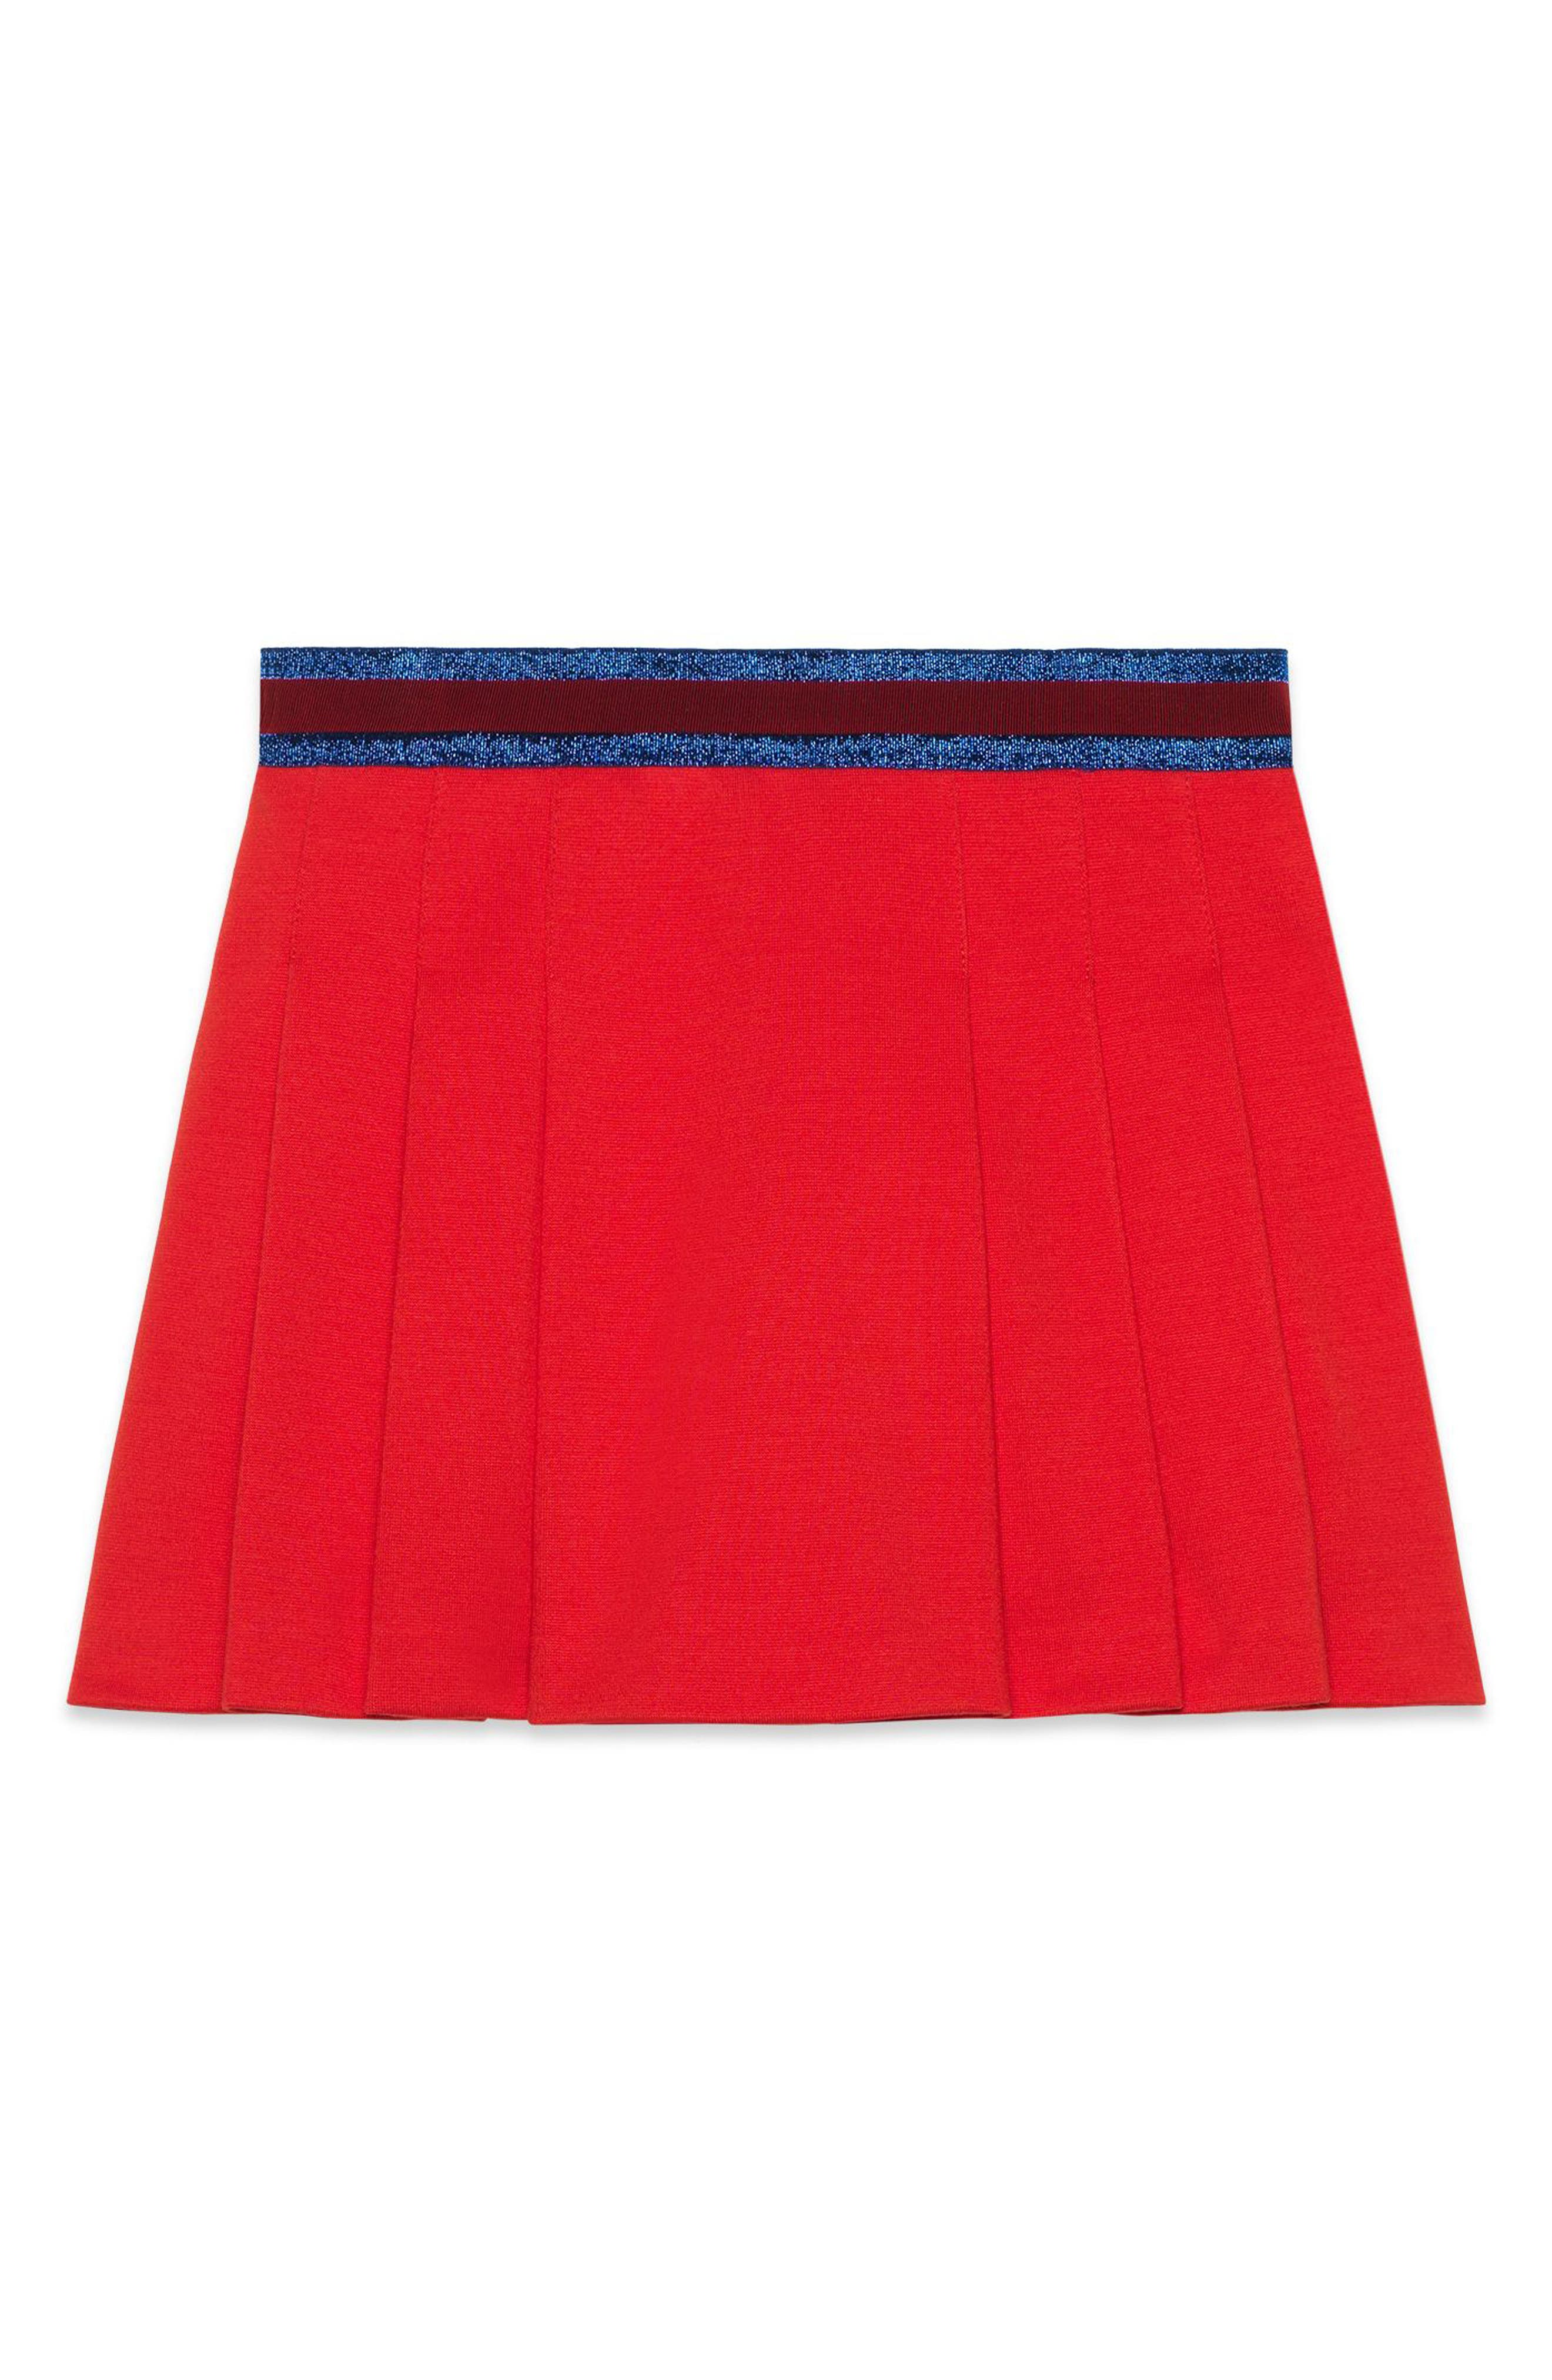 Pleated Jersey Skirt,                             Alternate thumbnail 2, color,                             Red Multi